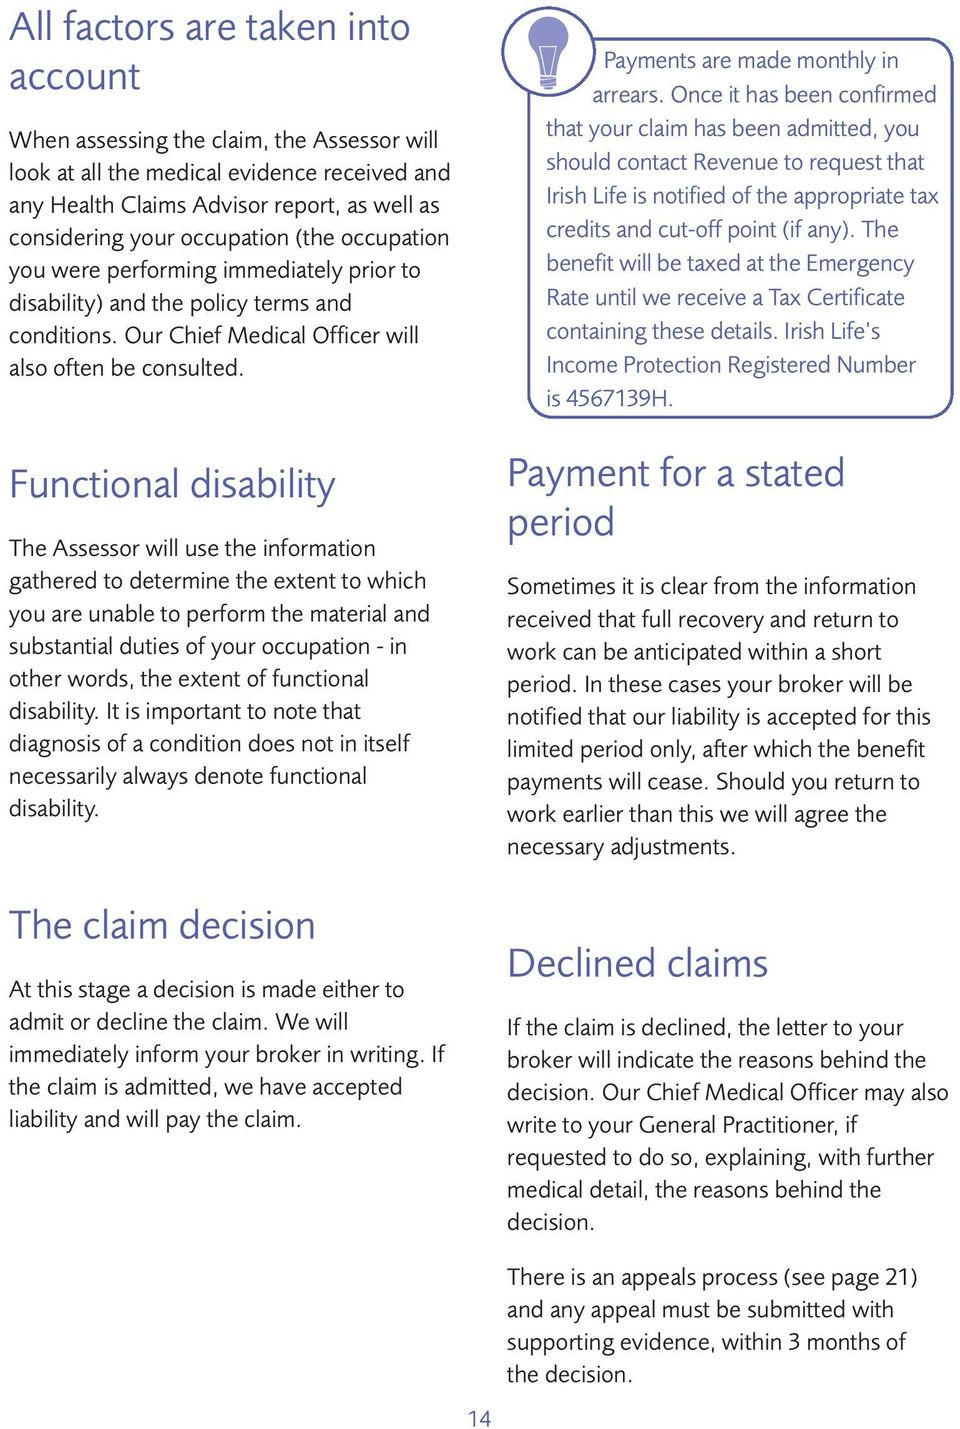 Functional disability The Assessor will use the information gathered to determine the extent to which you are unable to perform the material and substantial duties of your occupation - in other